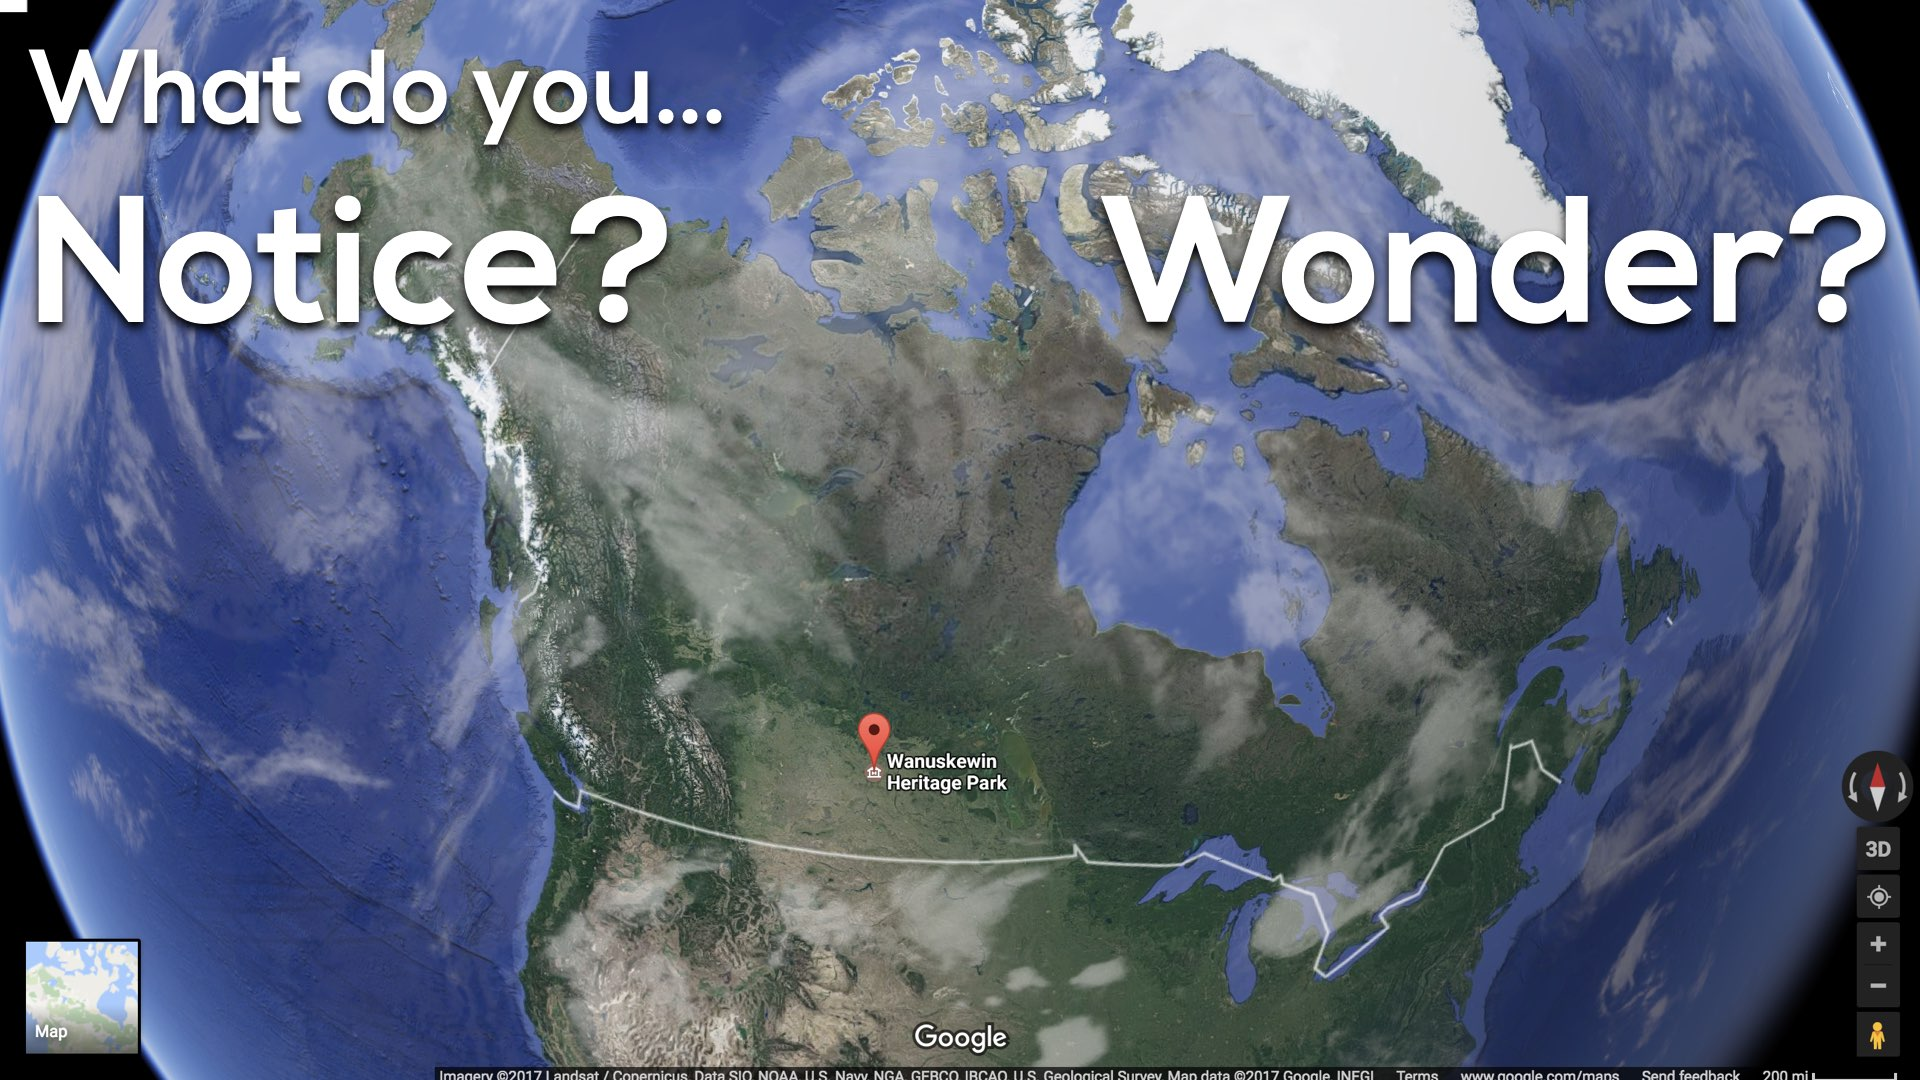 I'm Hoping That We'll Be Able To Steer Some Of The Inquiry Around The Area  Of Saskatchewan Based On This Additional